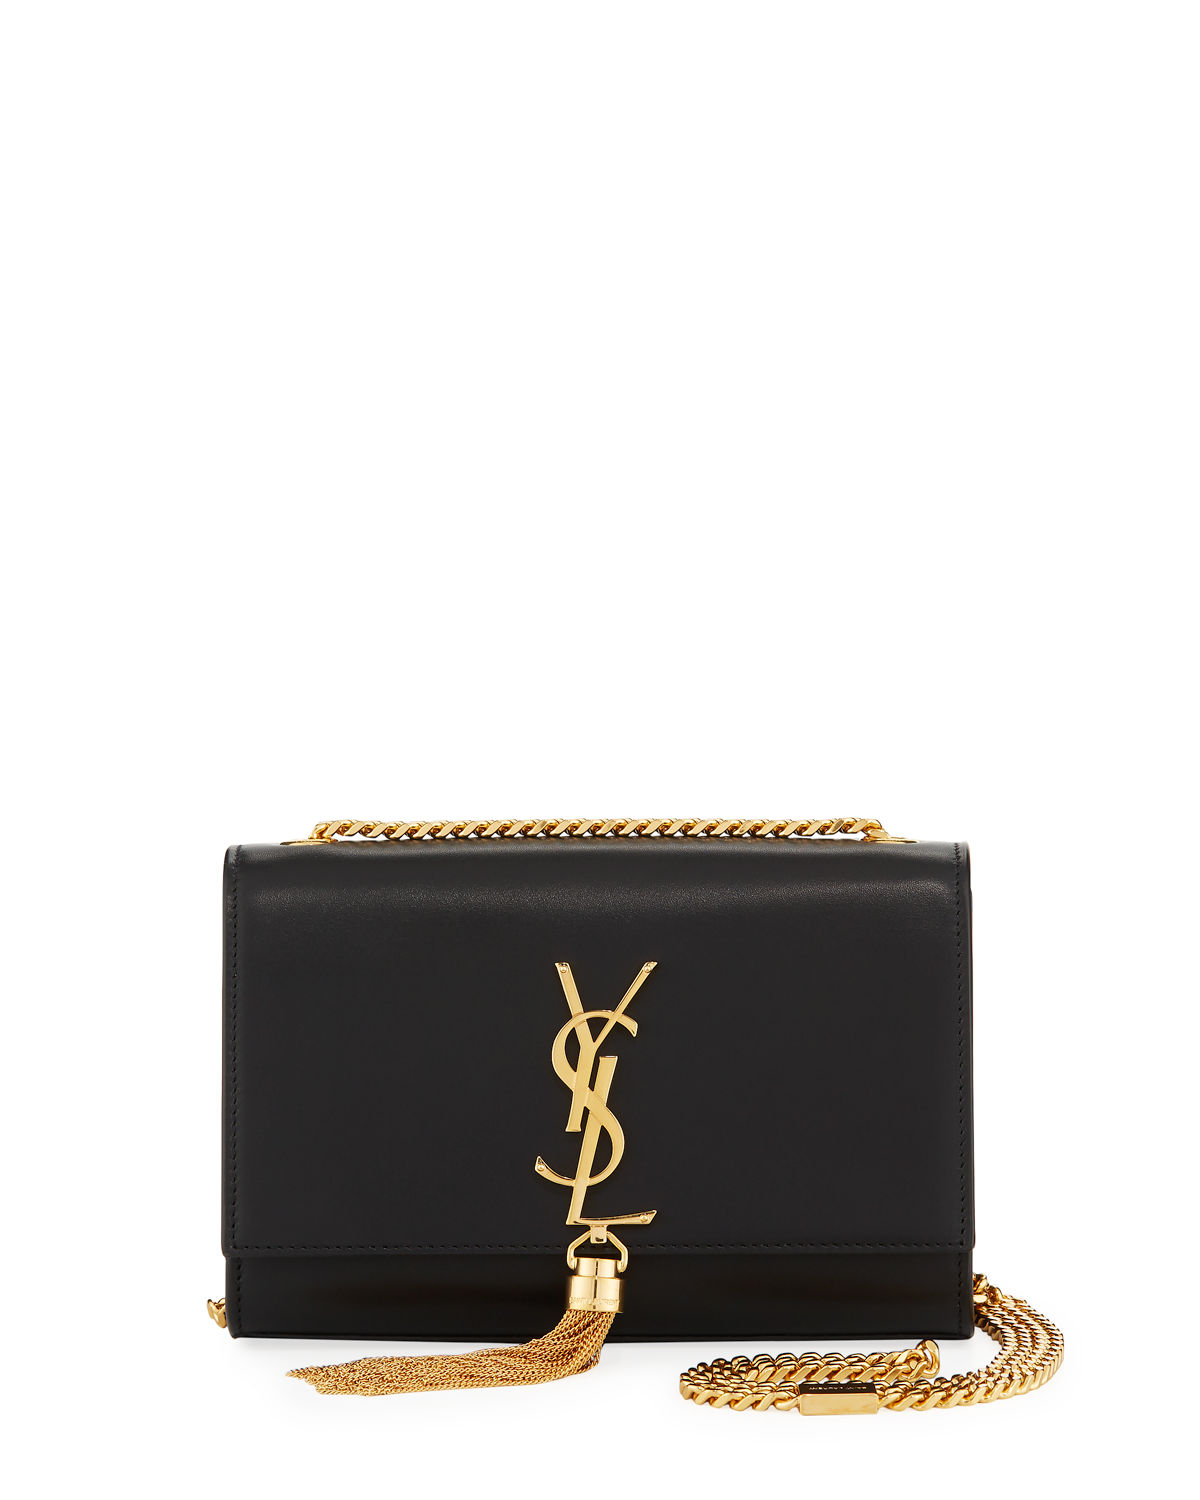 ae83c5af932 Saint Laurent Kate Monogram YSL Small Tassel Shoulder Bag with Golden  Hardware